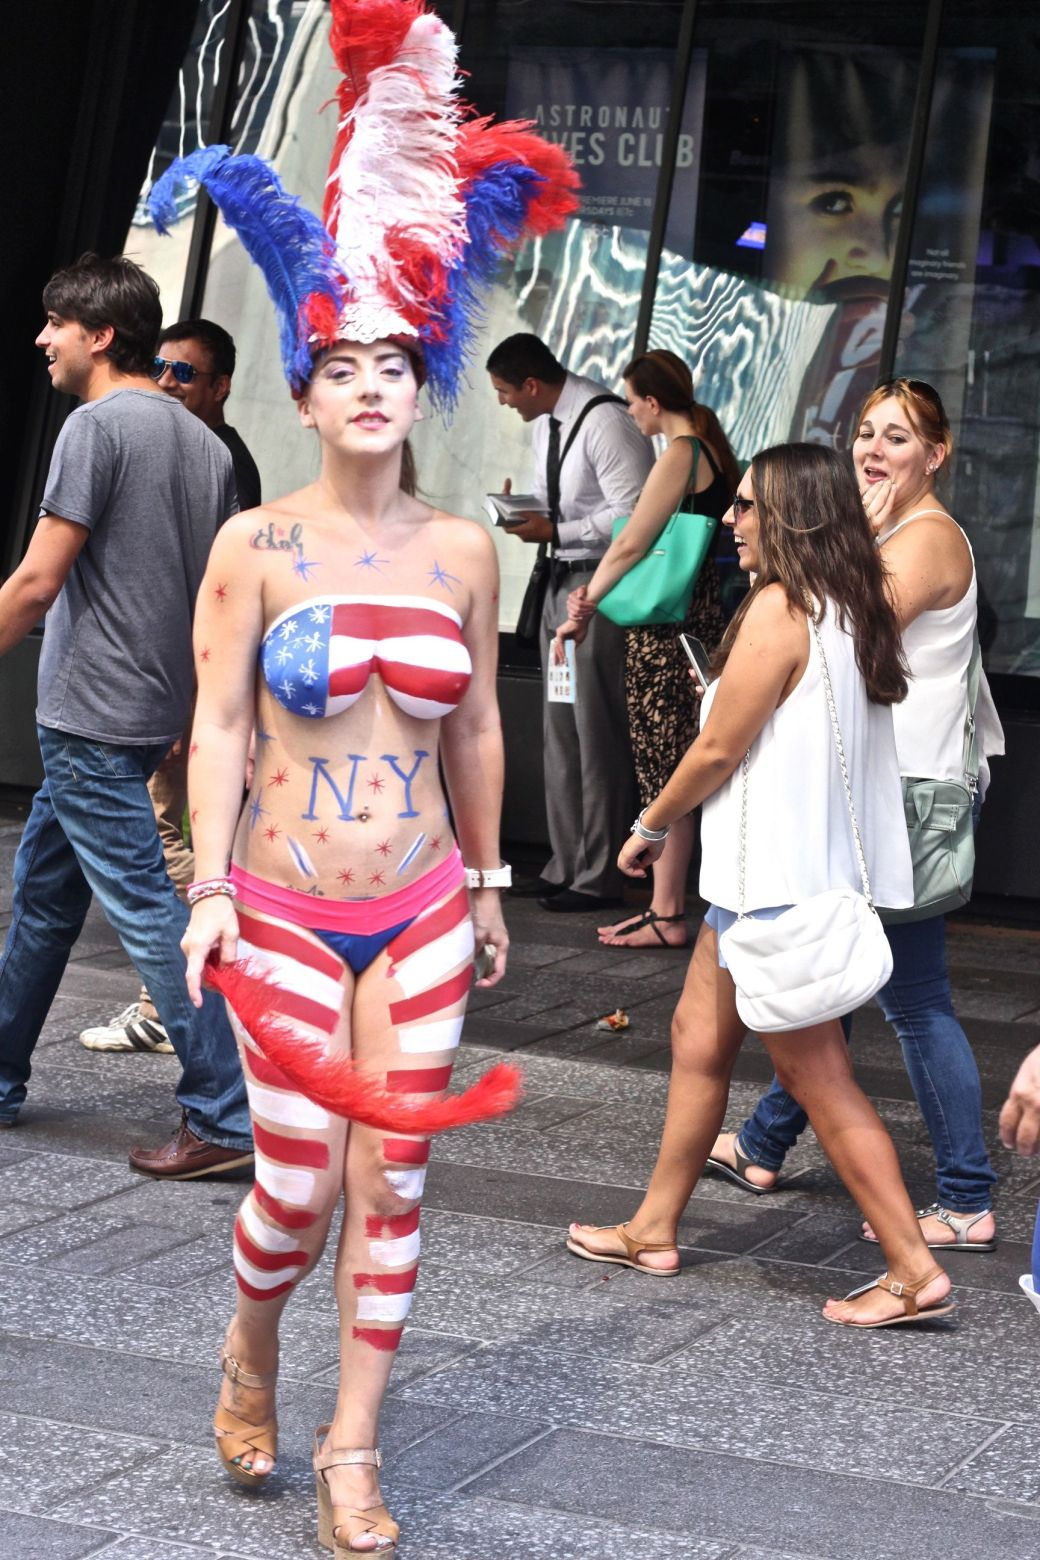 new york city times square naked painted woman with flag and feathers